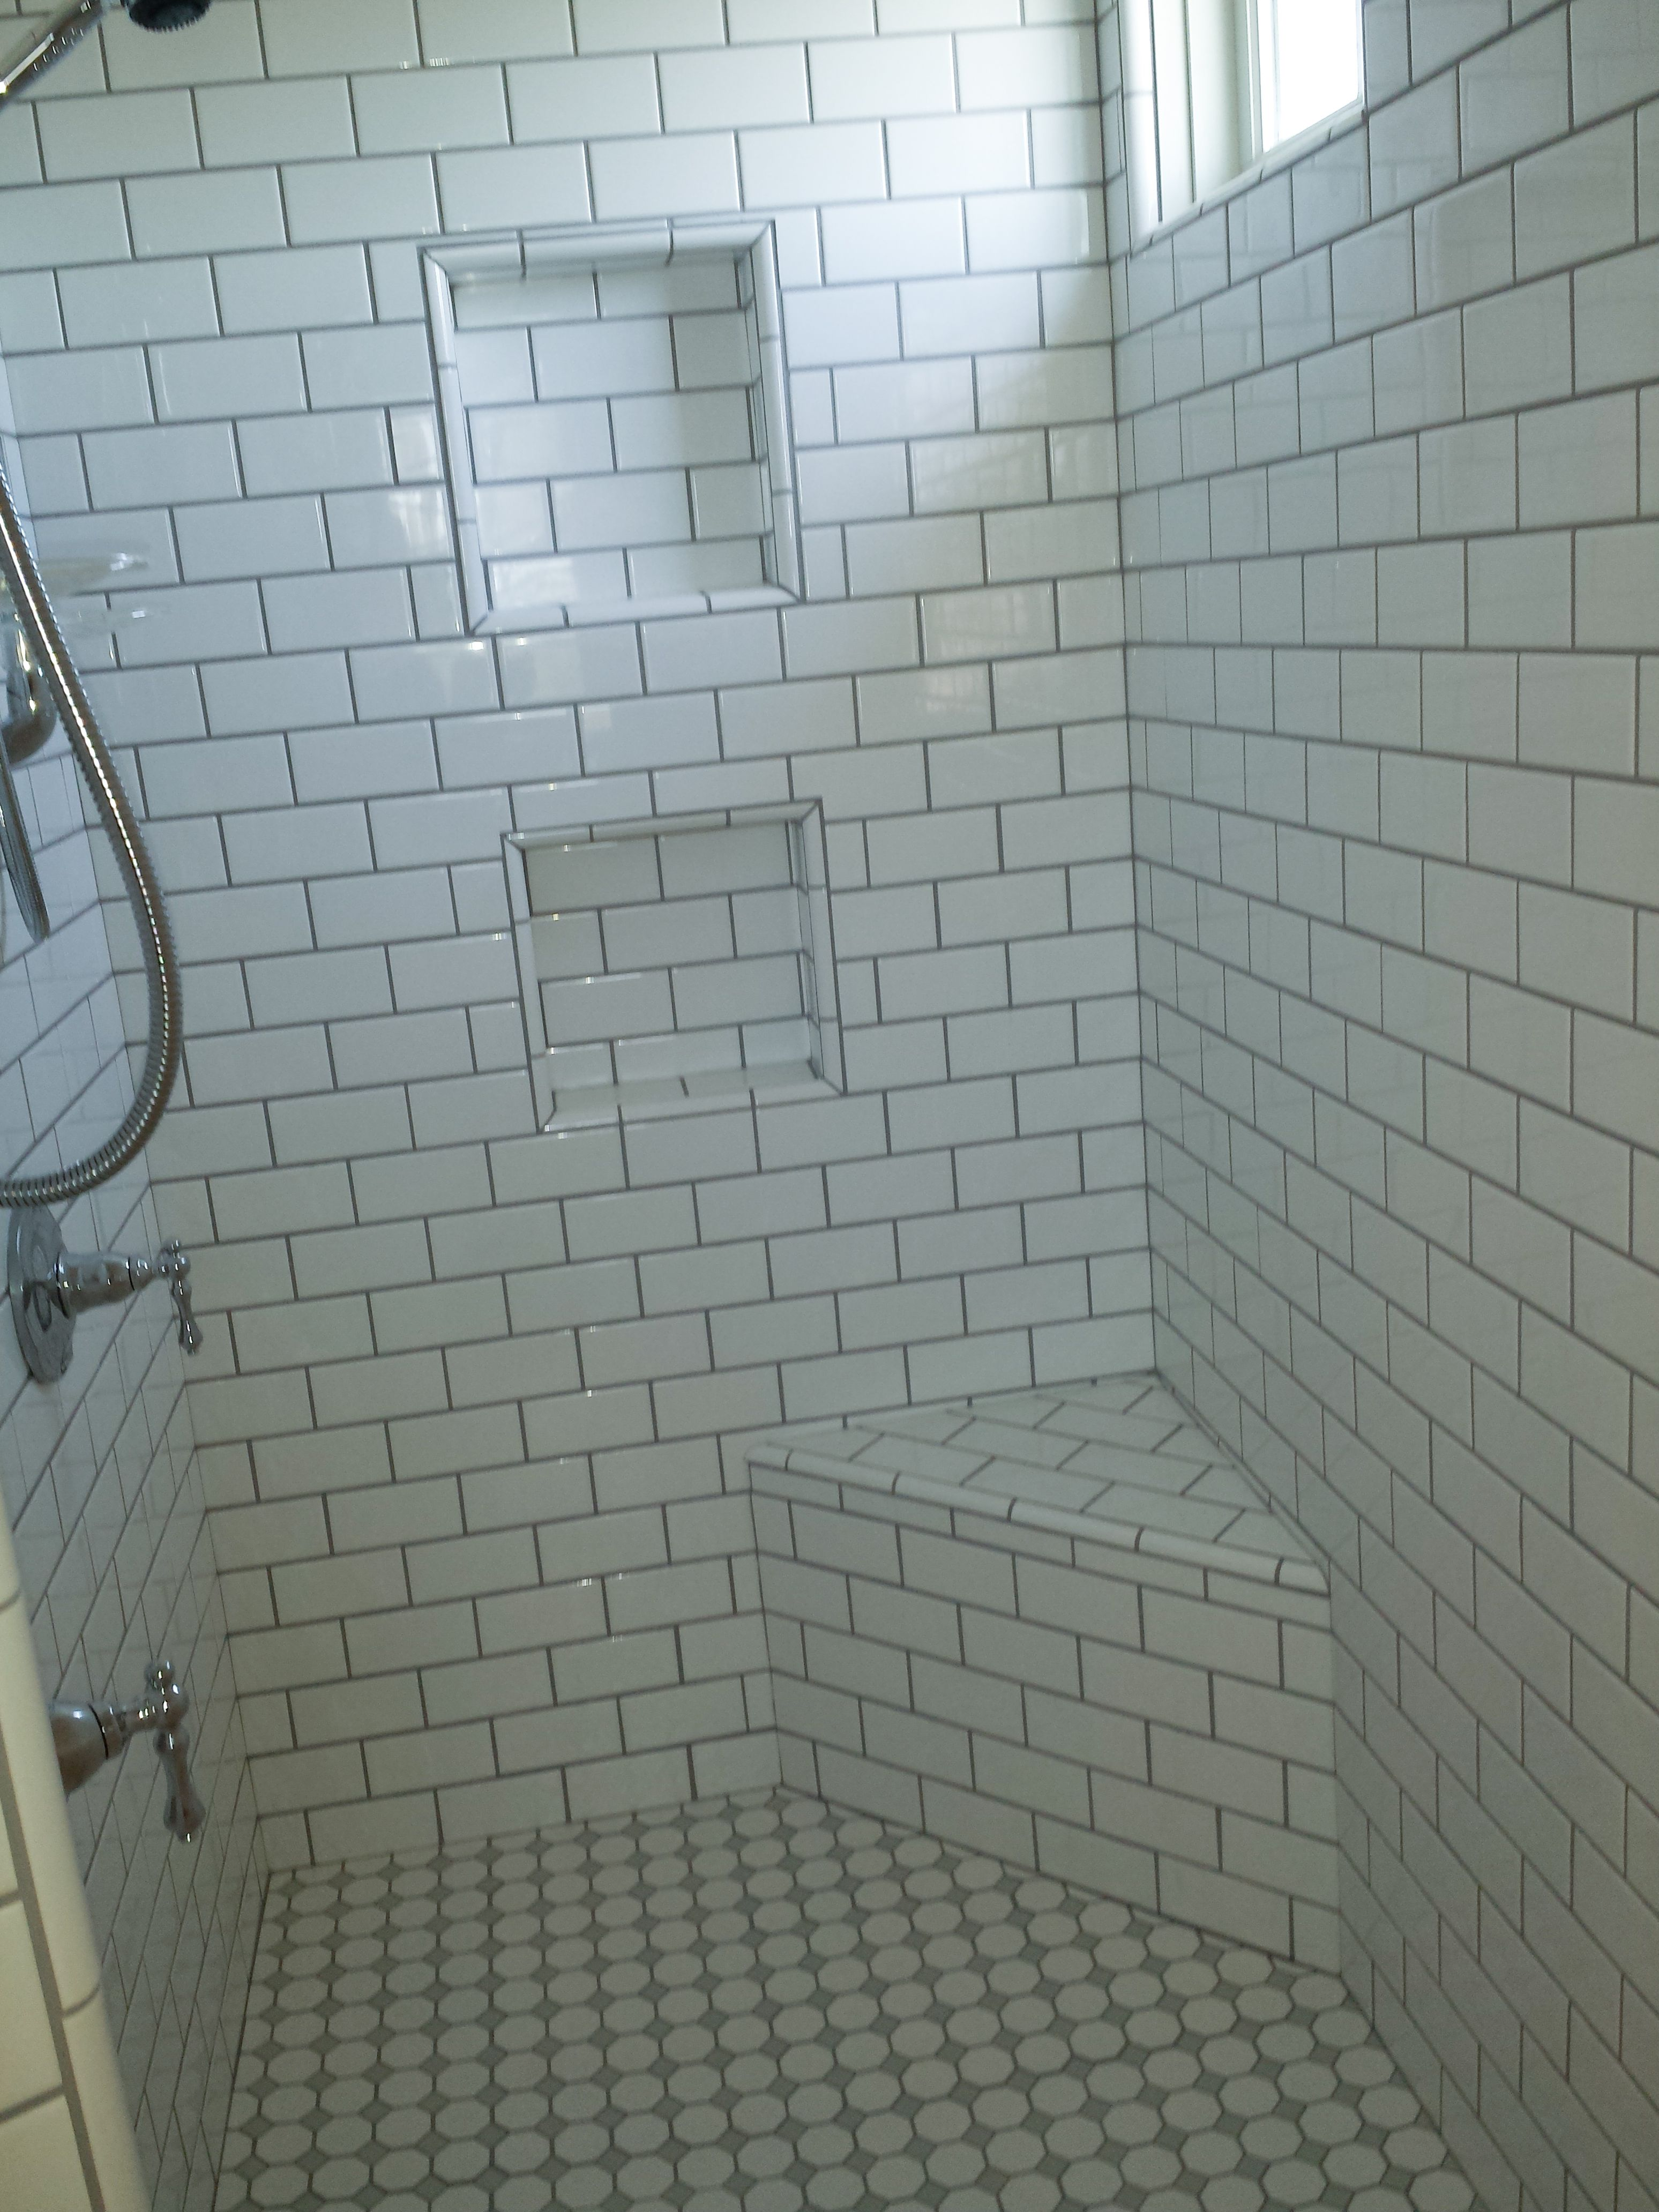 white subway tile with grey grout - seat and niches in shower | DIY ...